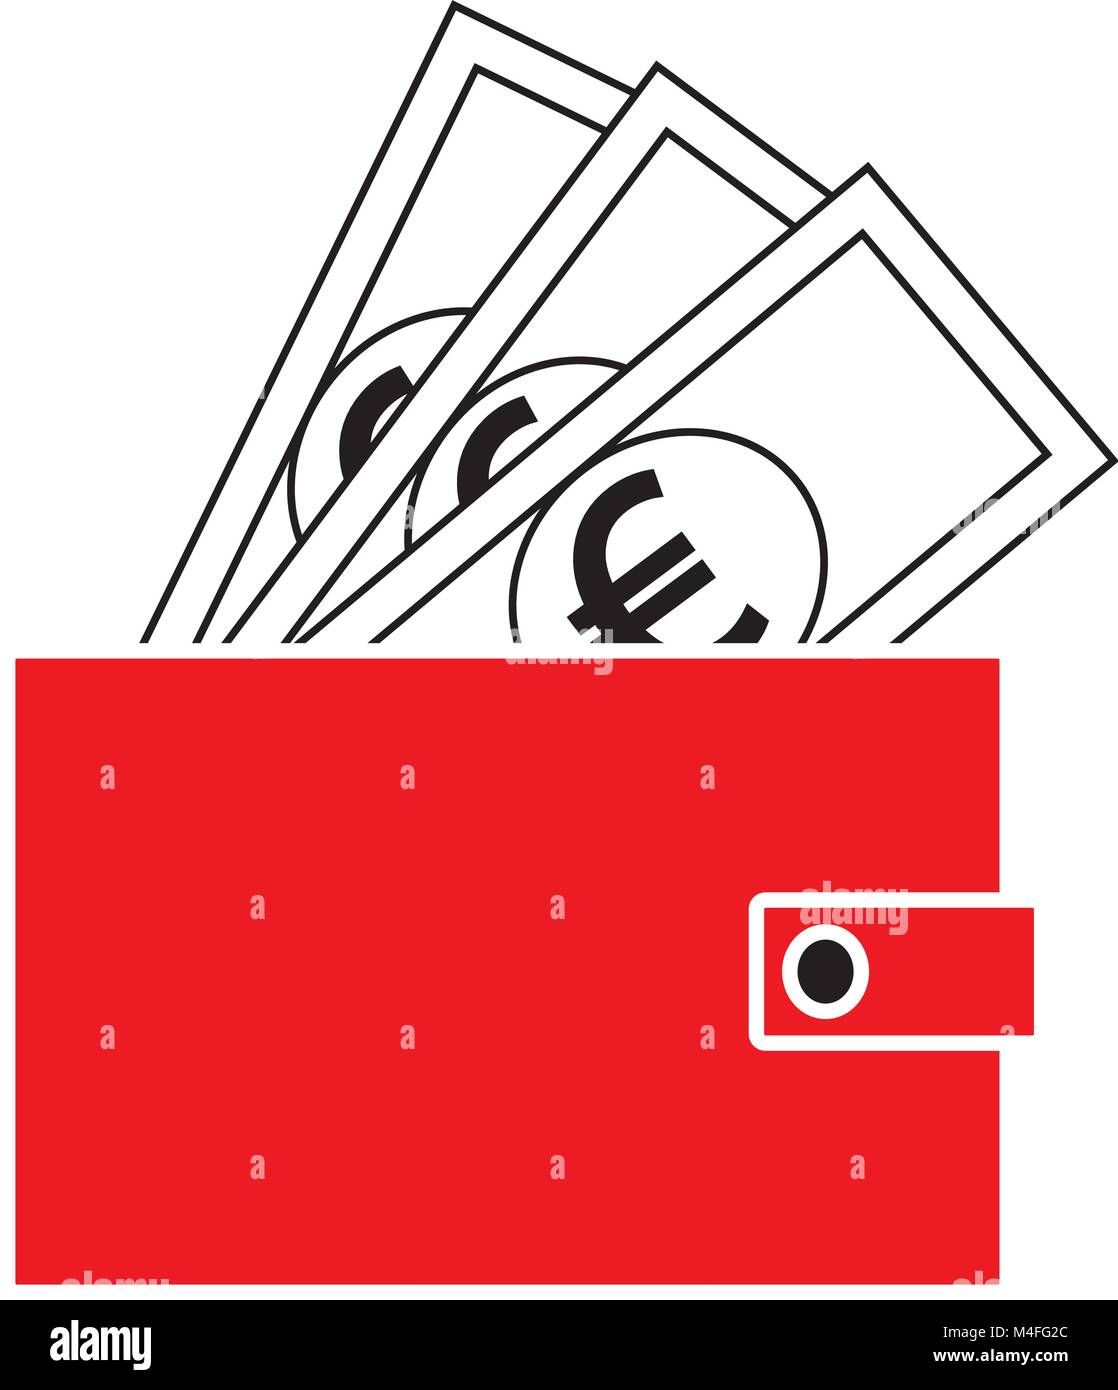 Euro currency icon or logo vector on notes popping out of a wallet euro currency icon or logo vector on notes popping out of a wallet symbol for european union bank banking or europe eurozone finances biocorpaavc Gallery